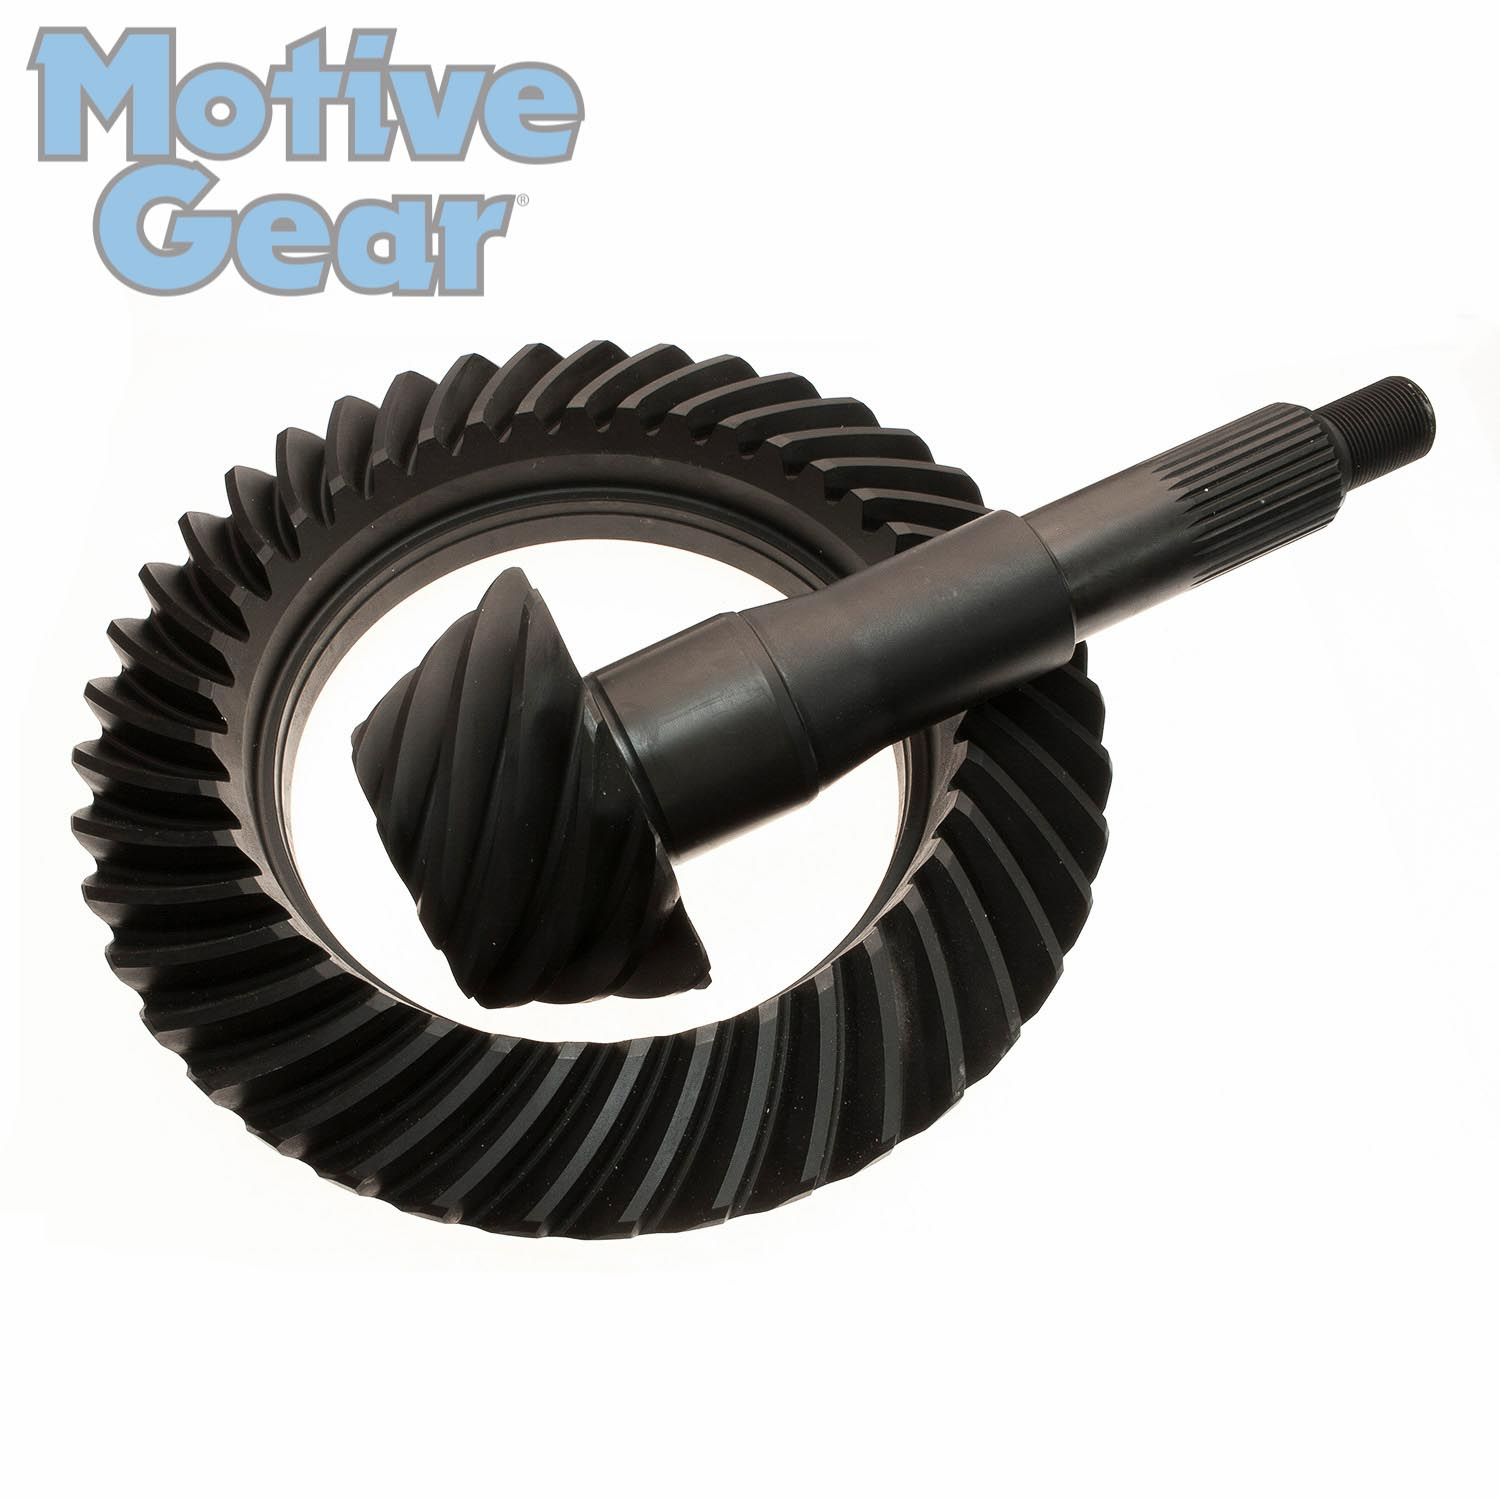 Ford 10.25 Motive Gear Ring and Pinion Gear Set